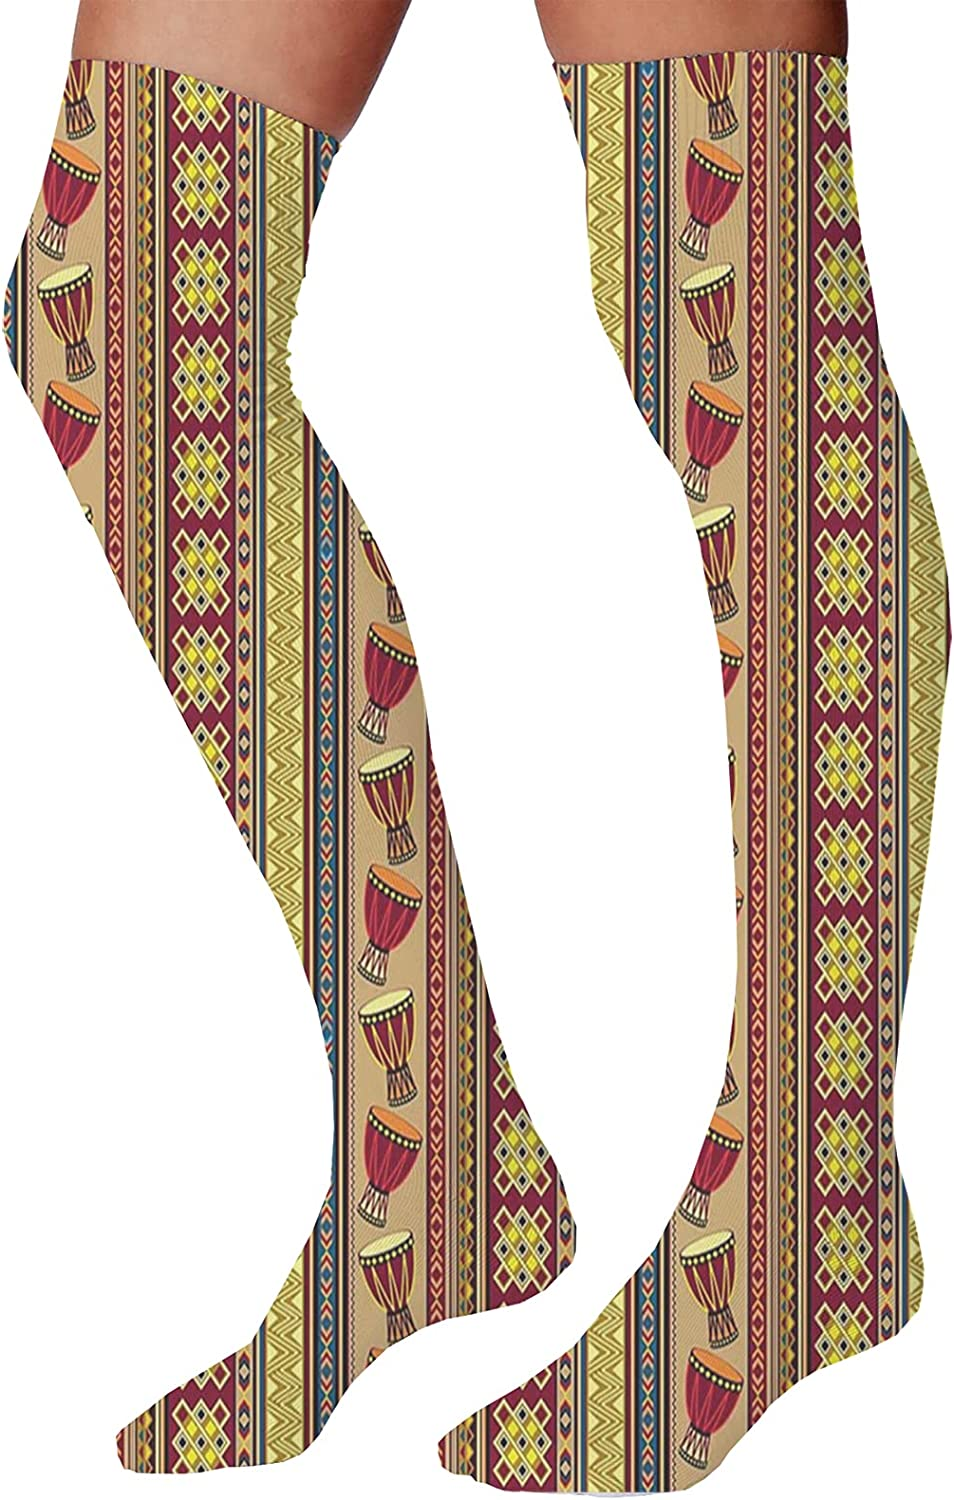 Men's and Women's Fun Socks,African Style Chevron Pattern with Tribal Elegance Ornament Design Theme